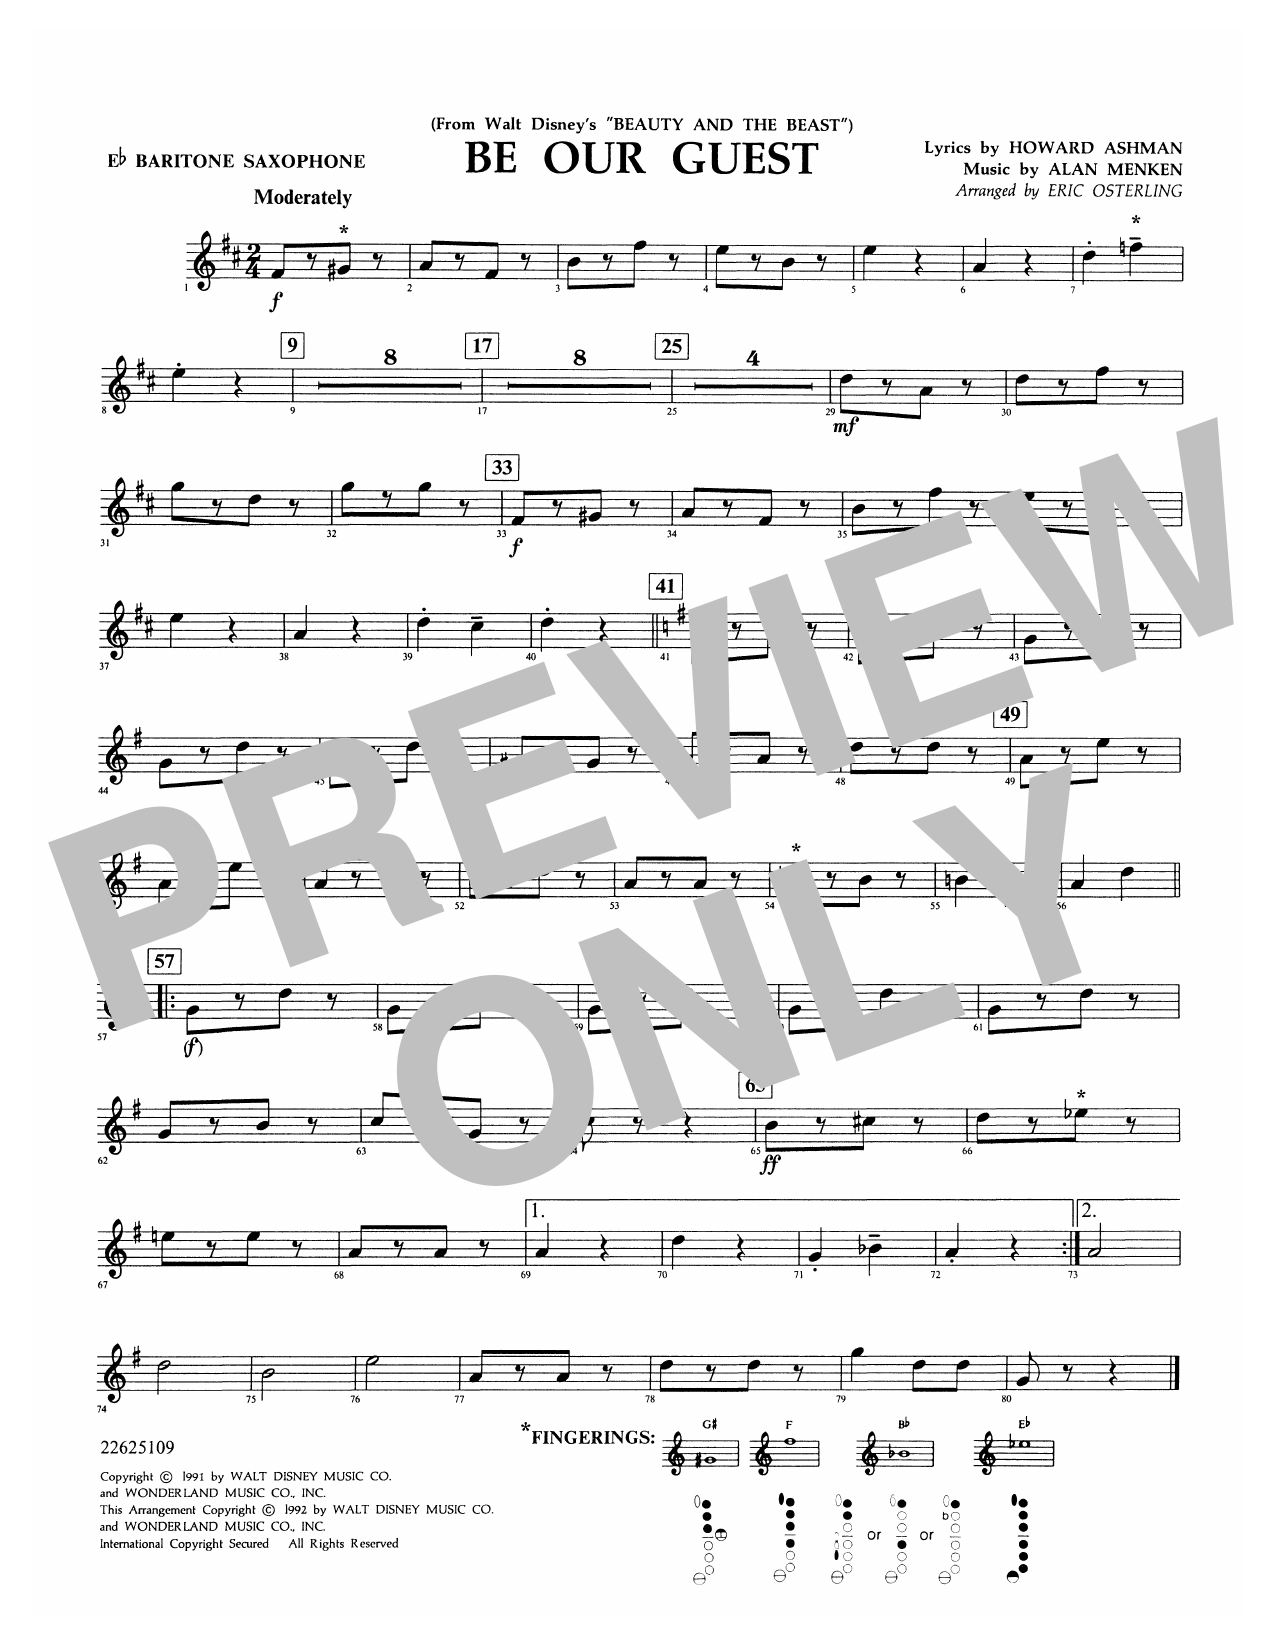 Be Our Guest (from Beauty And The Beast) (arr. Eric Osterling) - Eb Baritone Saxophone Sheet Music